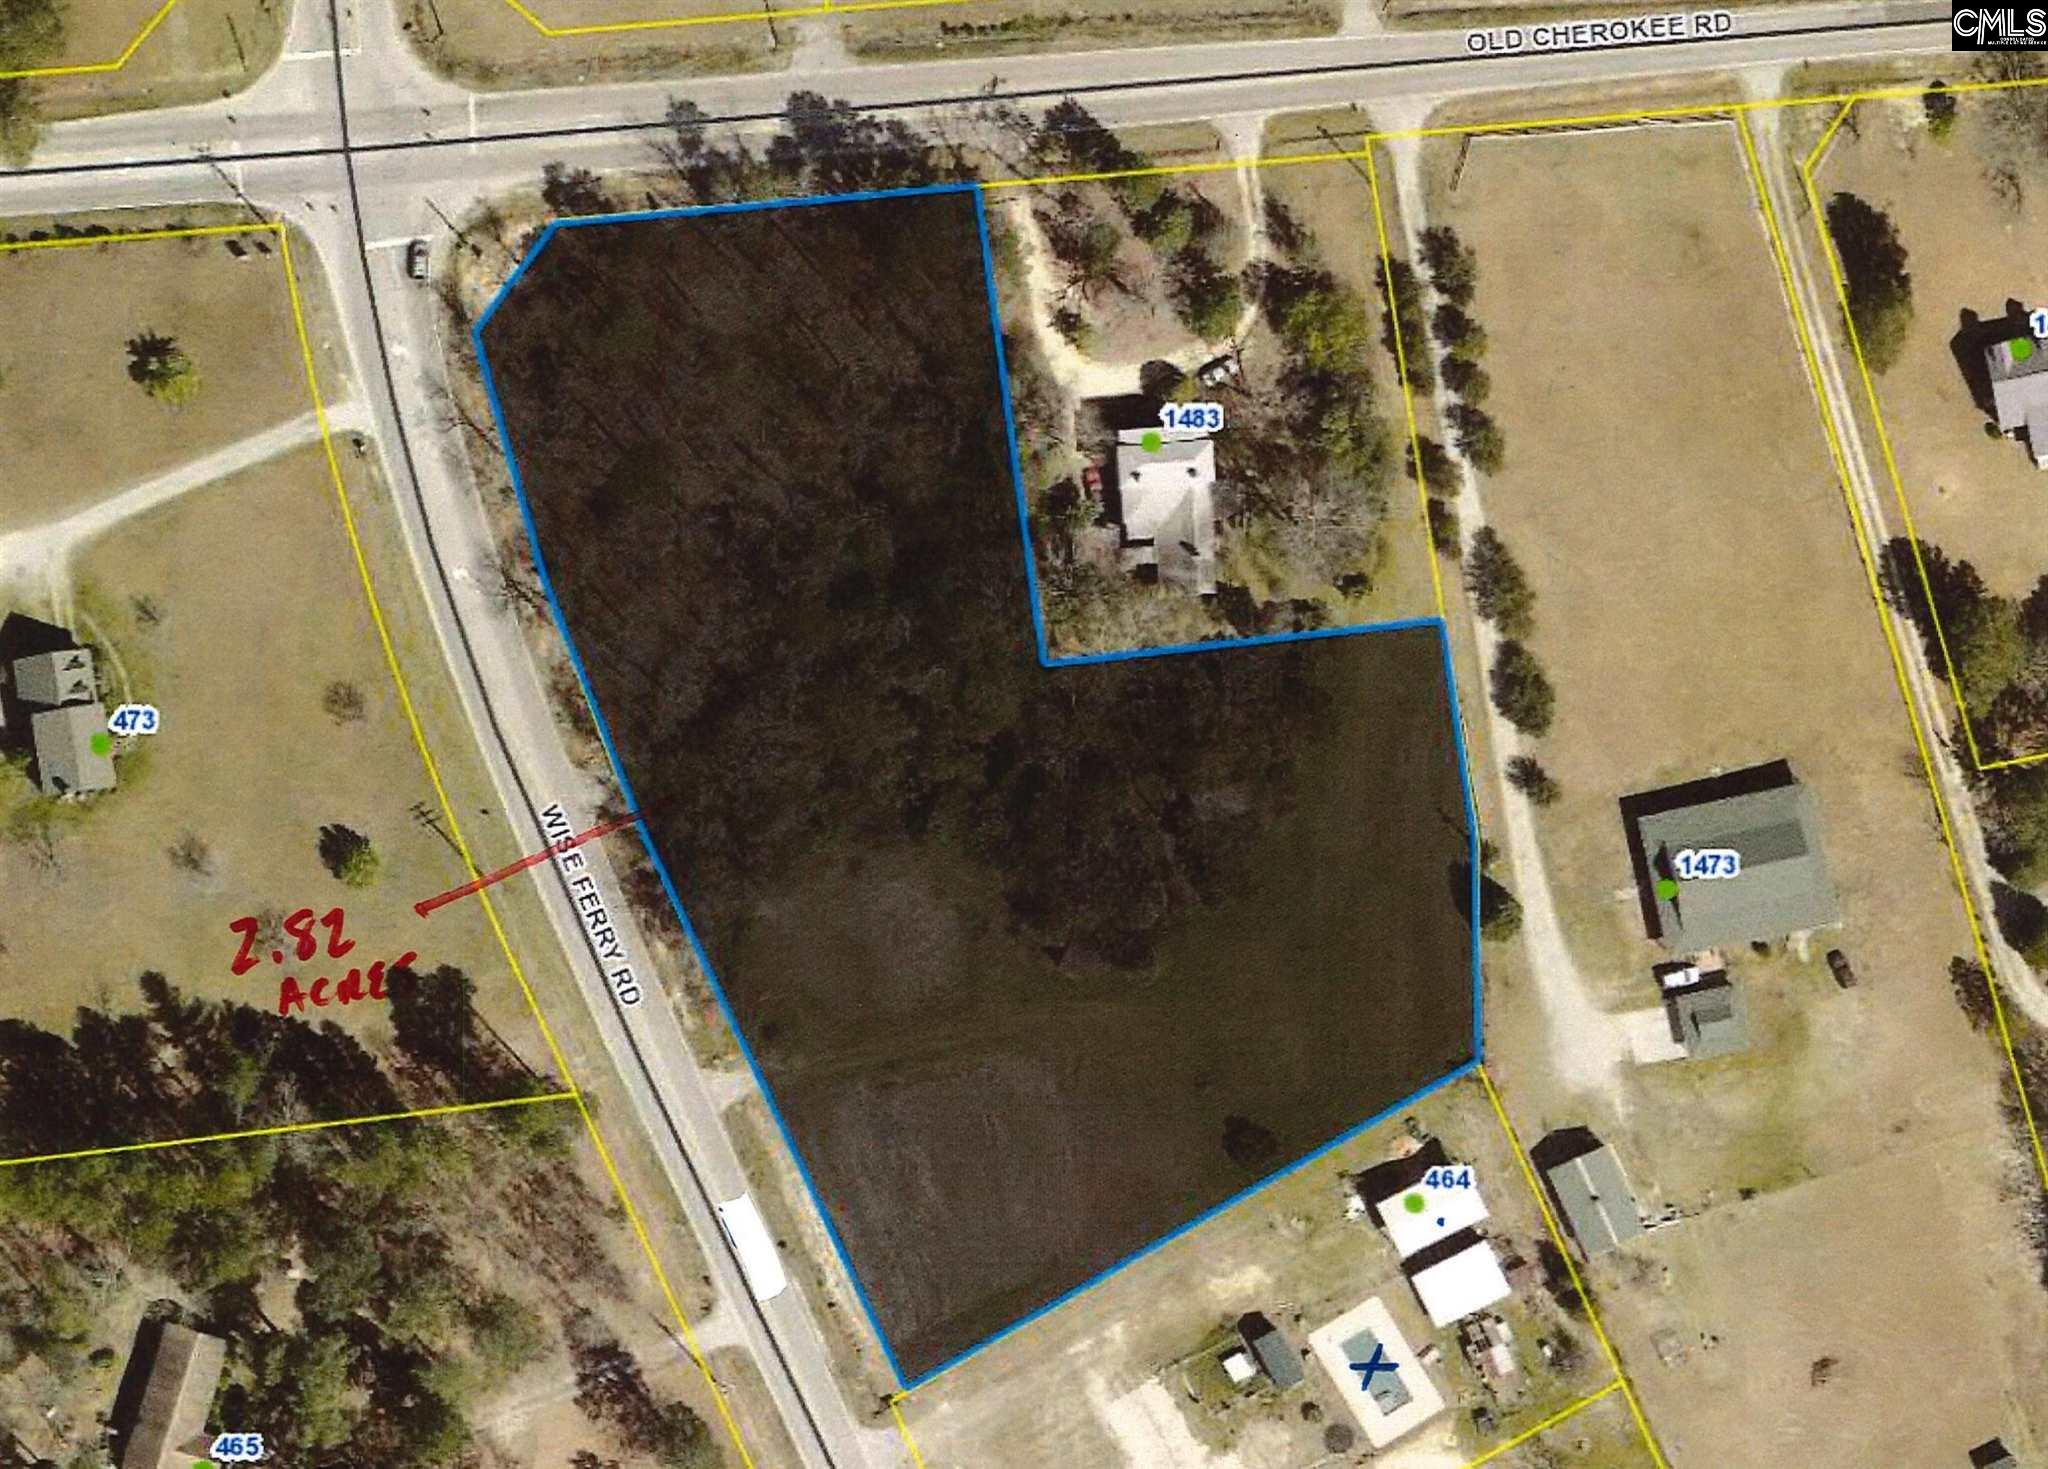 +/- 2.82 acres on corner of Old Cherokee Rd and Wise Ferry Rd with a total of 12,200 VPD on Old Cherokee (SCDOT 2020). There is 168' of road frontage on Old Cherokee Rd and 480' on Wise Ferry. Sewer is 700' away and water is available. Owner will consider subdividing or selling the entire parcel which includes an income producing office and an additional 0.96 acres. Owner will also consider build to suit. This piece is currently zoned RD in scenic corridor.